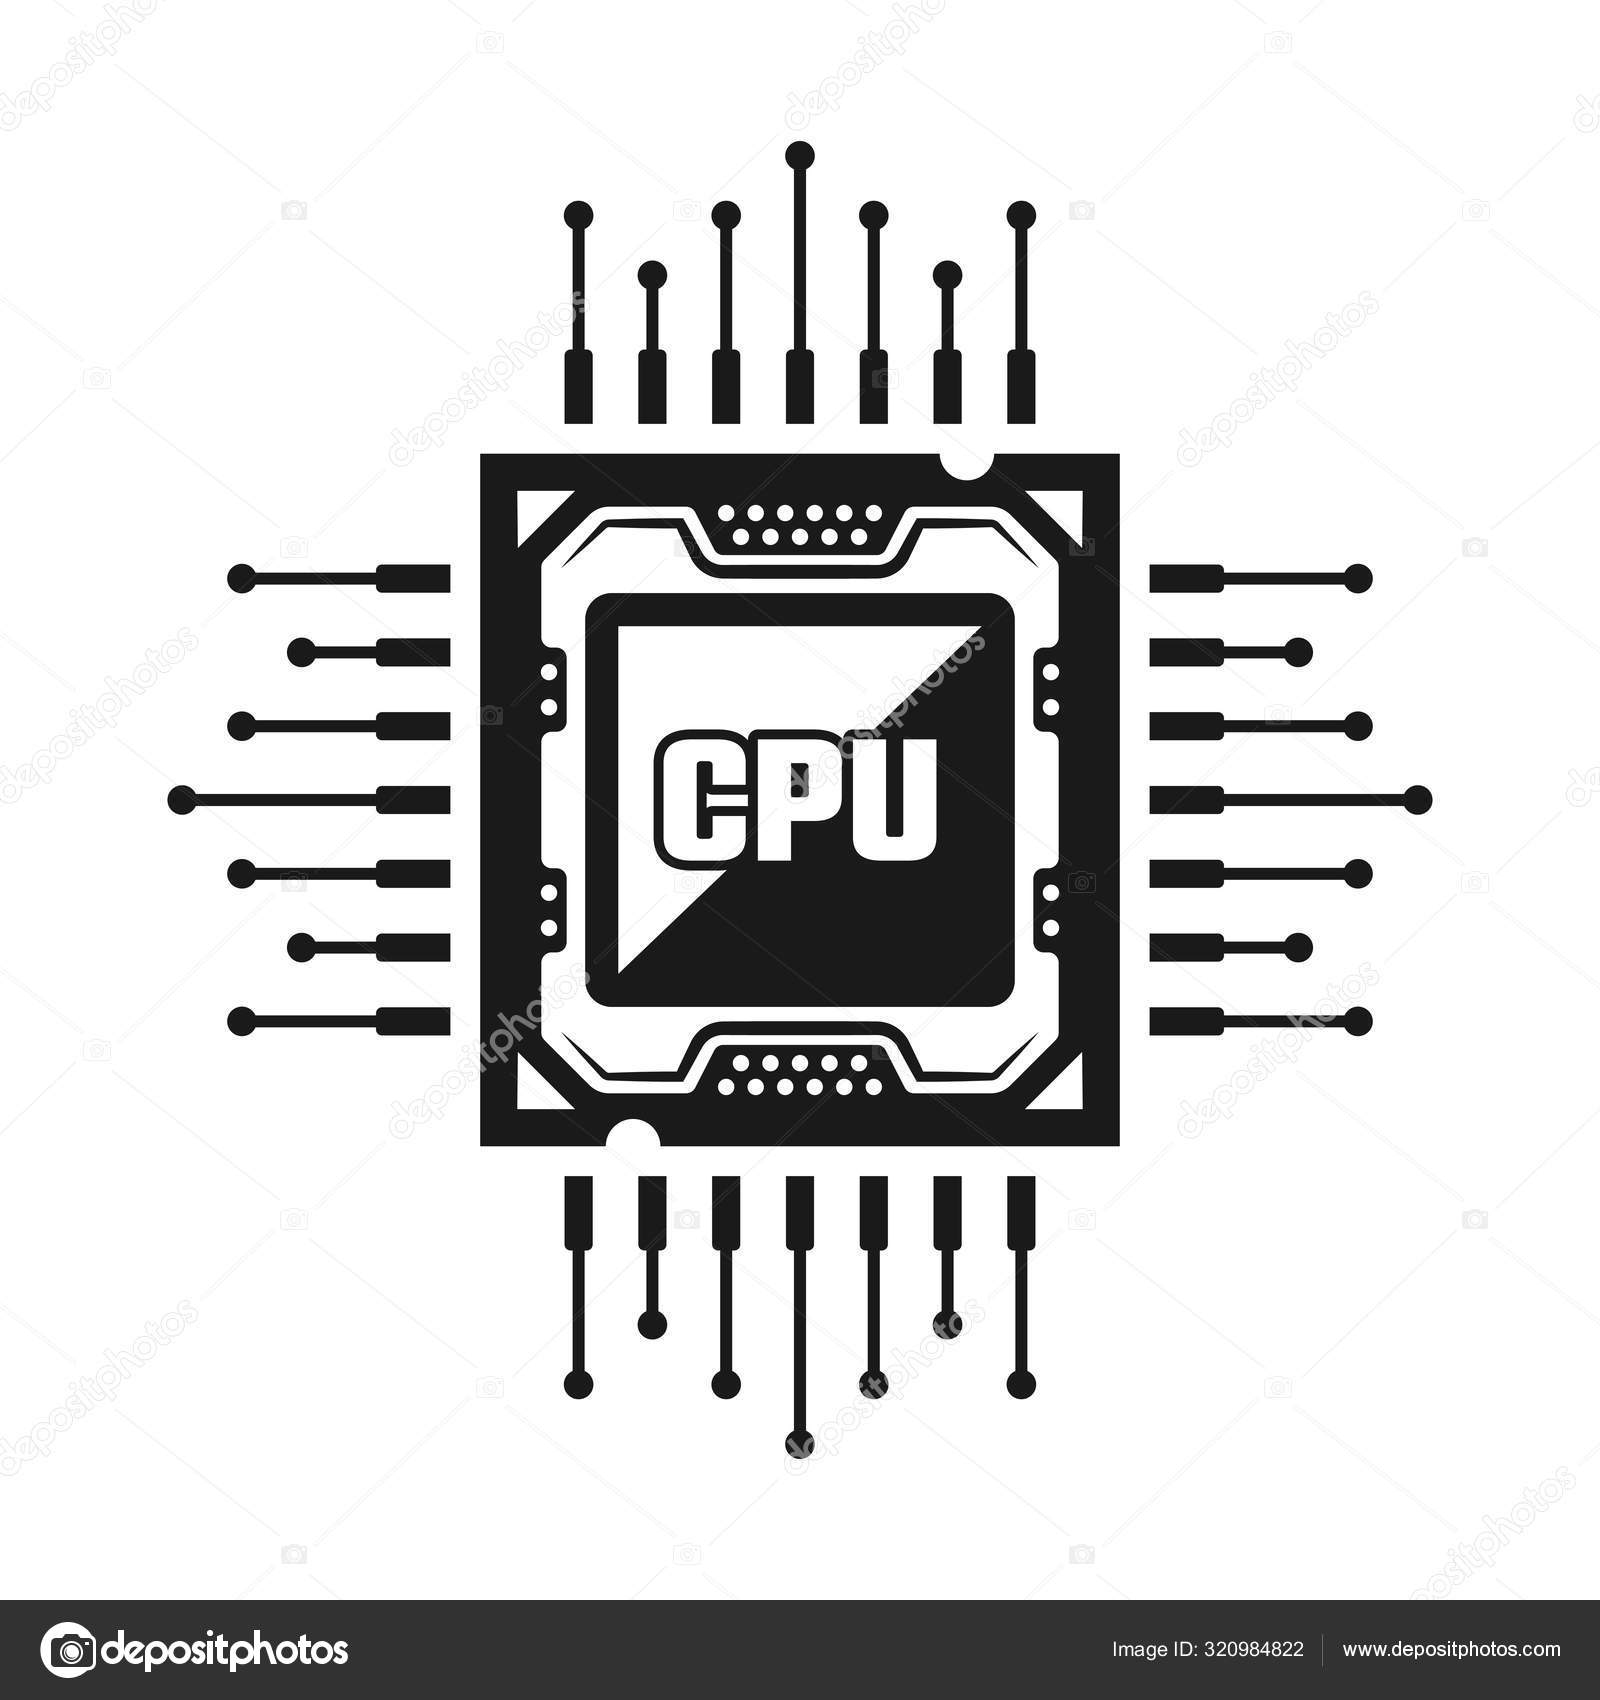 computer cpu vector object or design element stock vector c flat enot 320984822 https depositphotos com 320984822 stock illustration computer cpu vector object or html